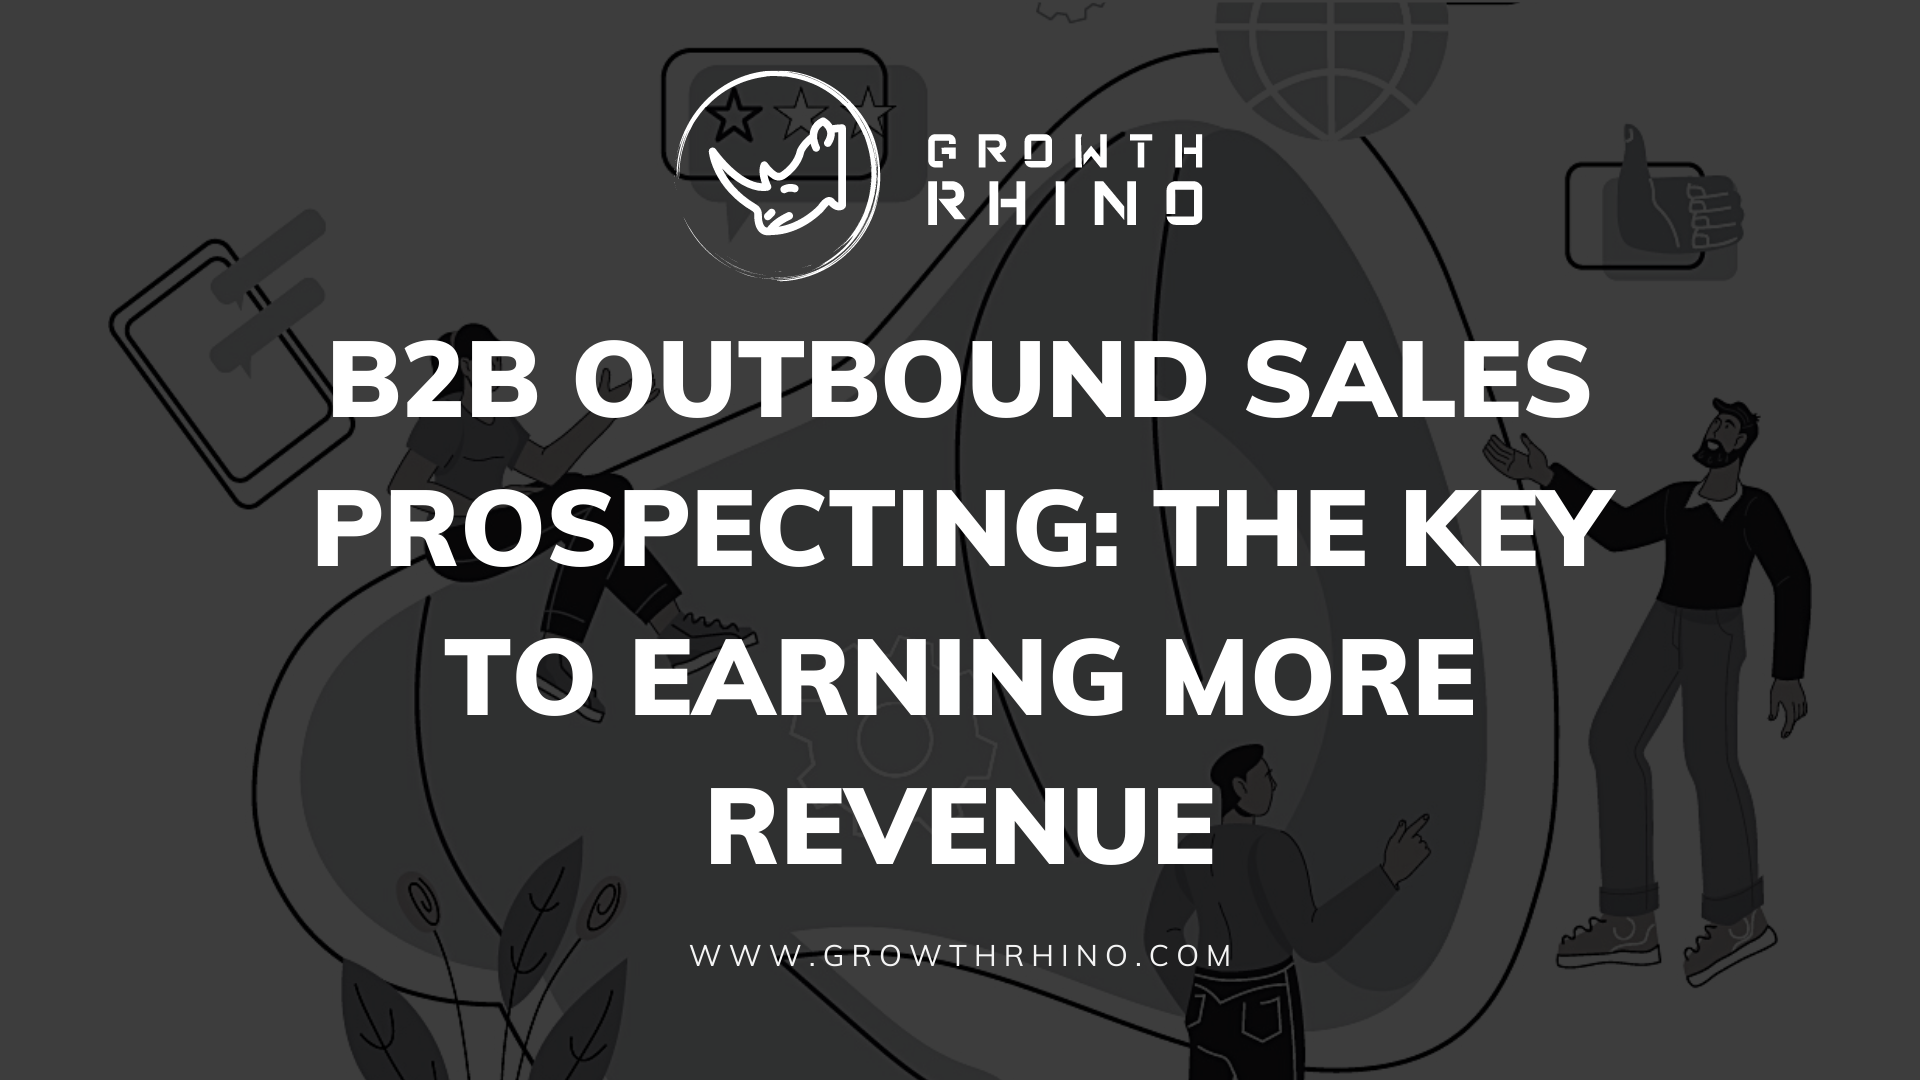 B2B Outbound Sales Prospecting: The Key to Earning More Revenue